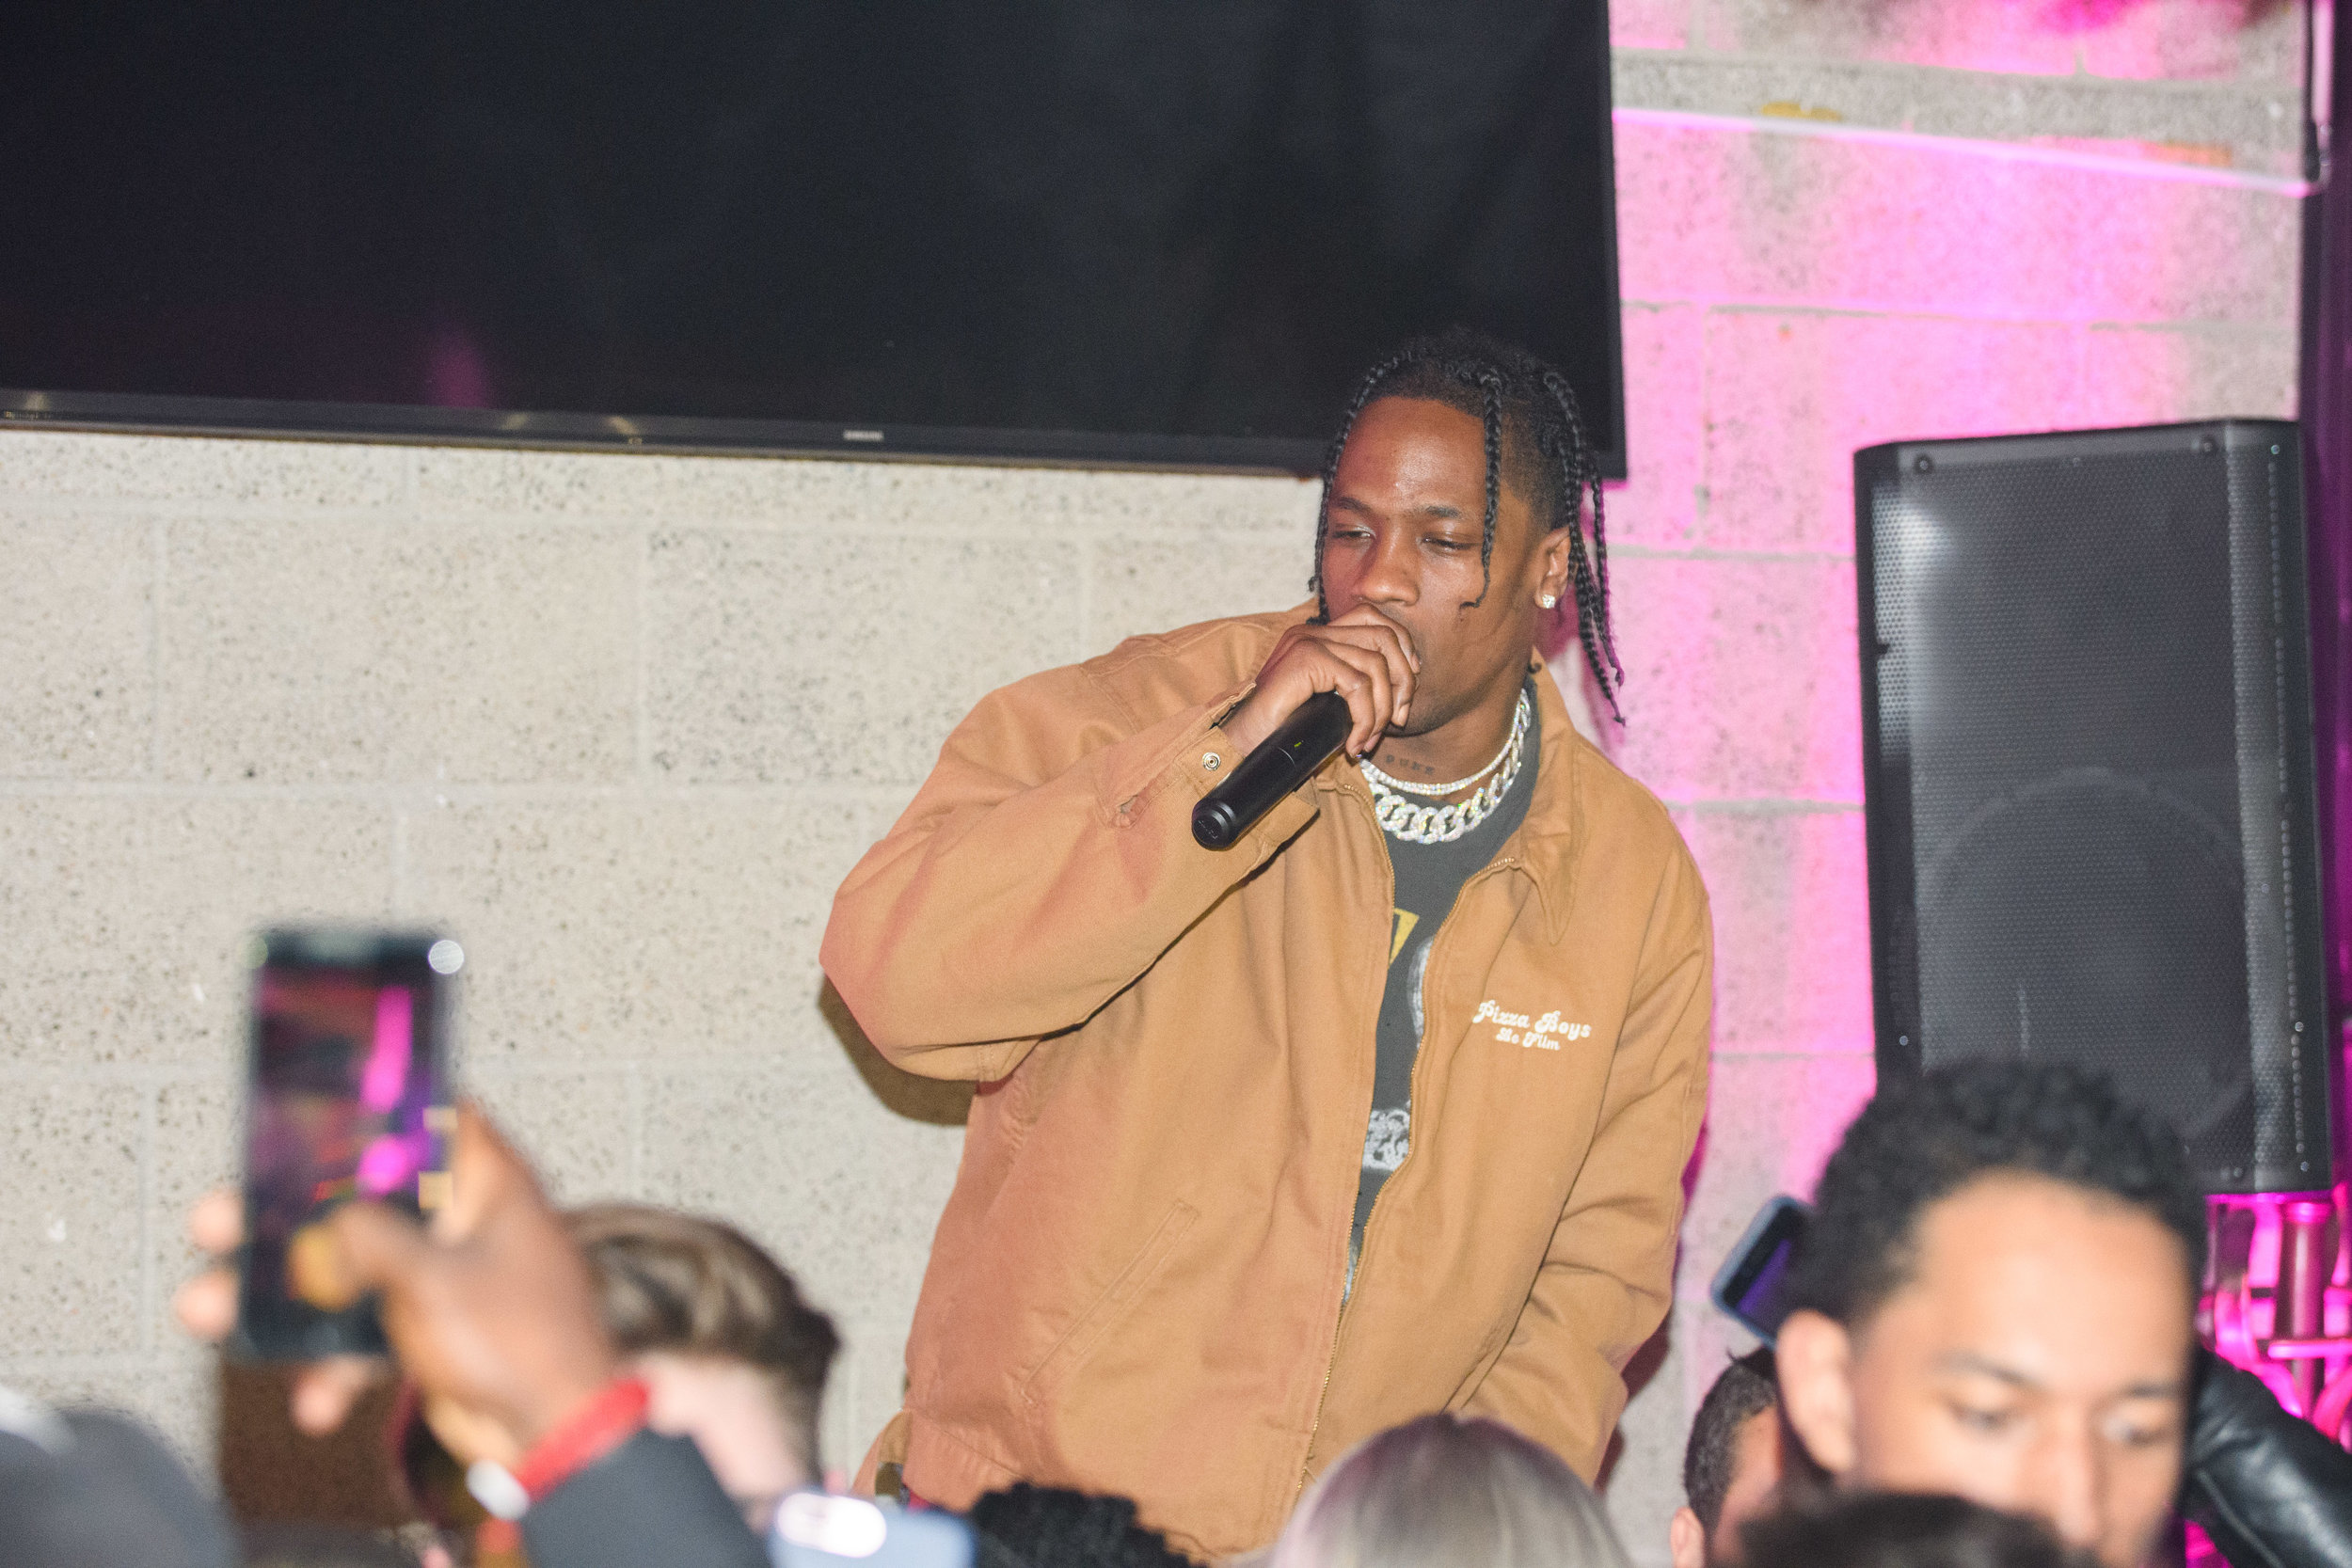 PrettyLittleThing New PLT Shape Collection with Stassie Celebrity Launch Party Travis Scott performs for the crowd.jpg